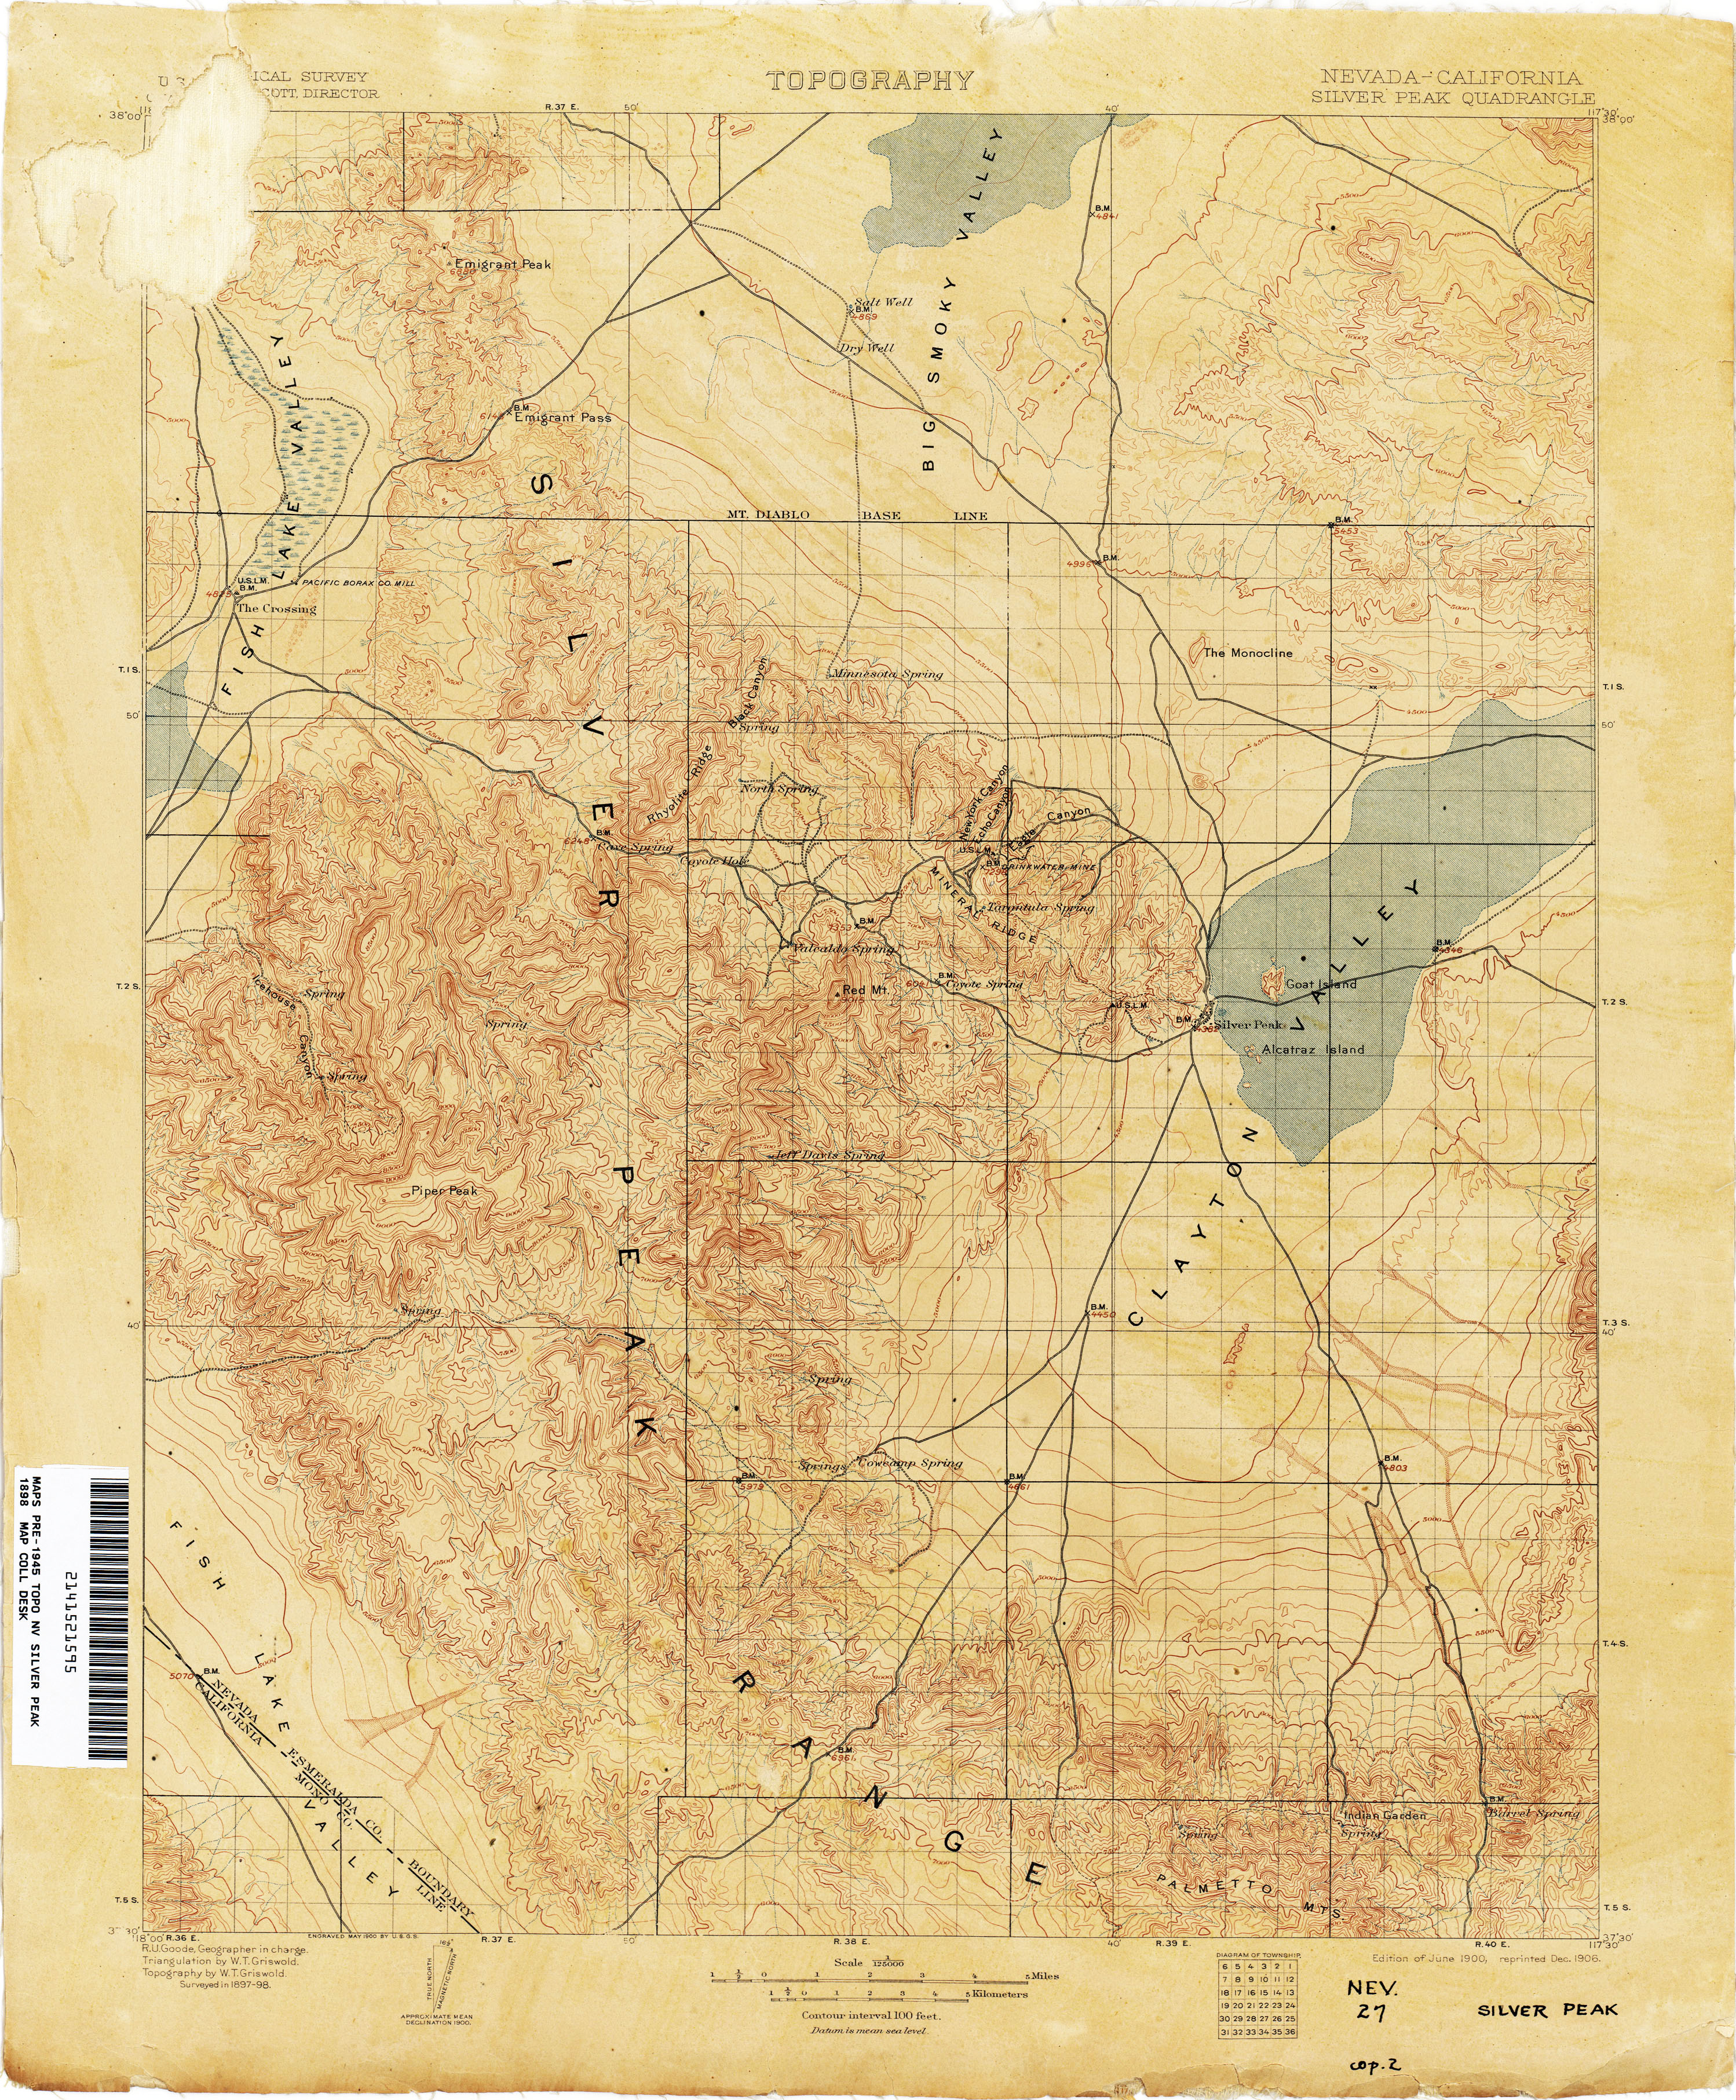 Nevada Historical Topographic Maps - Perry-Castañeda Map